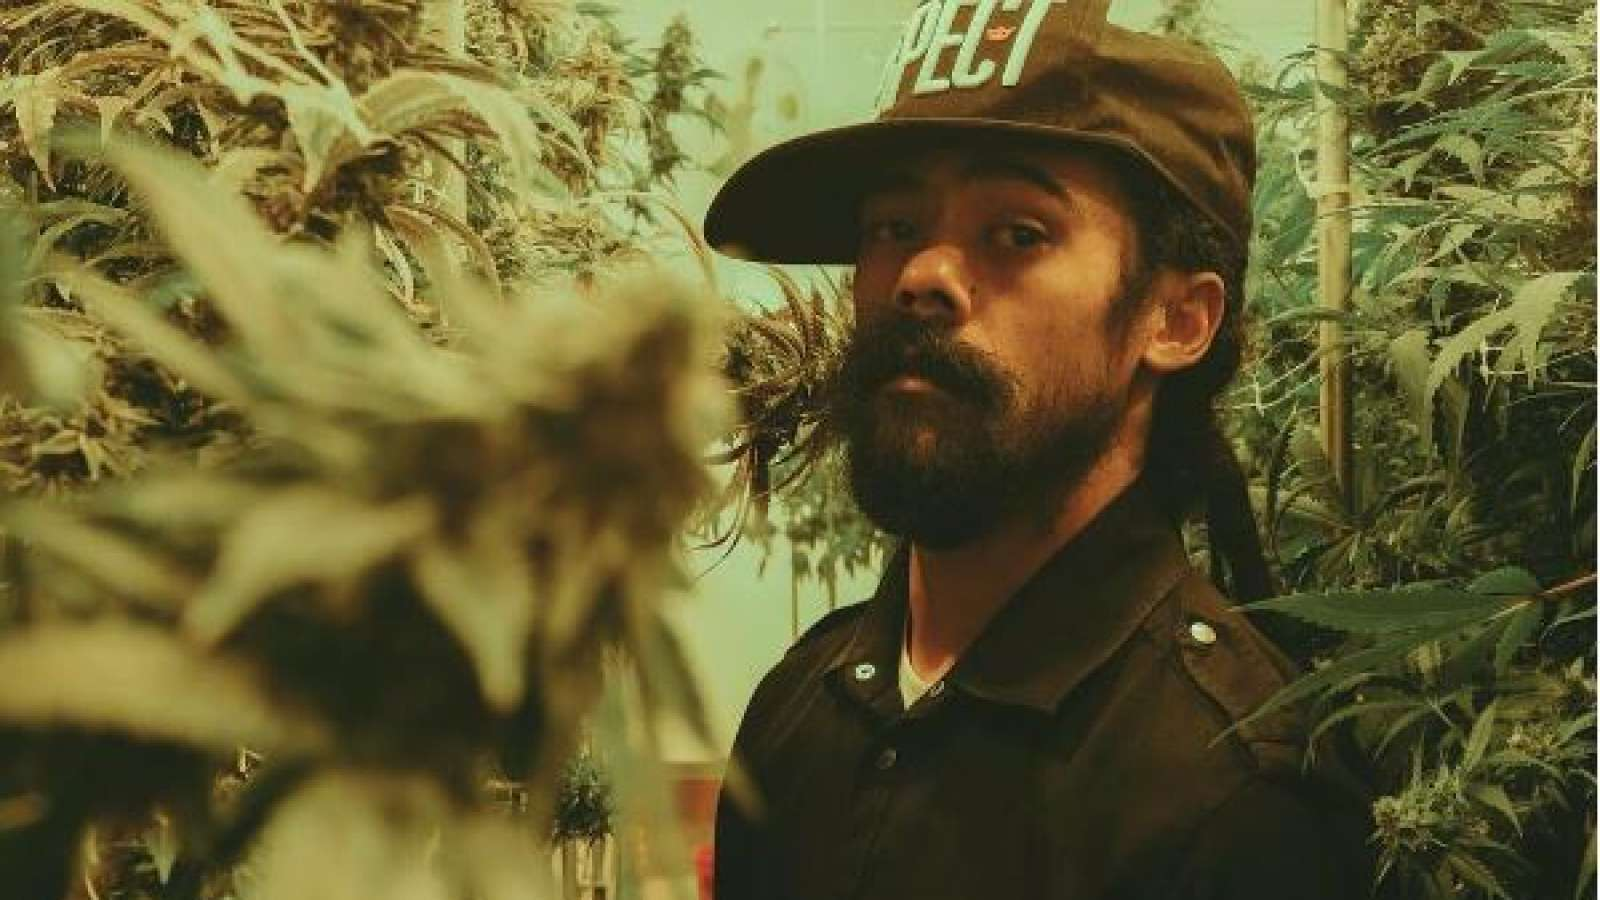 damian marley weed prison